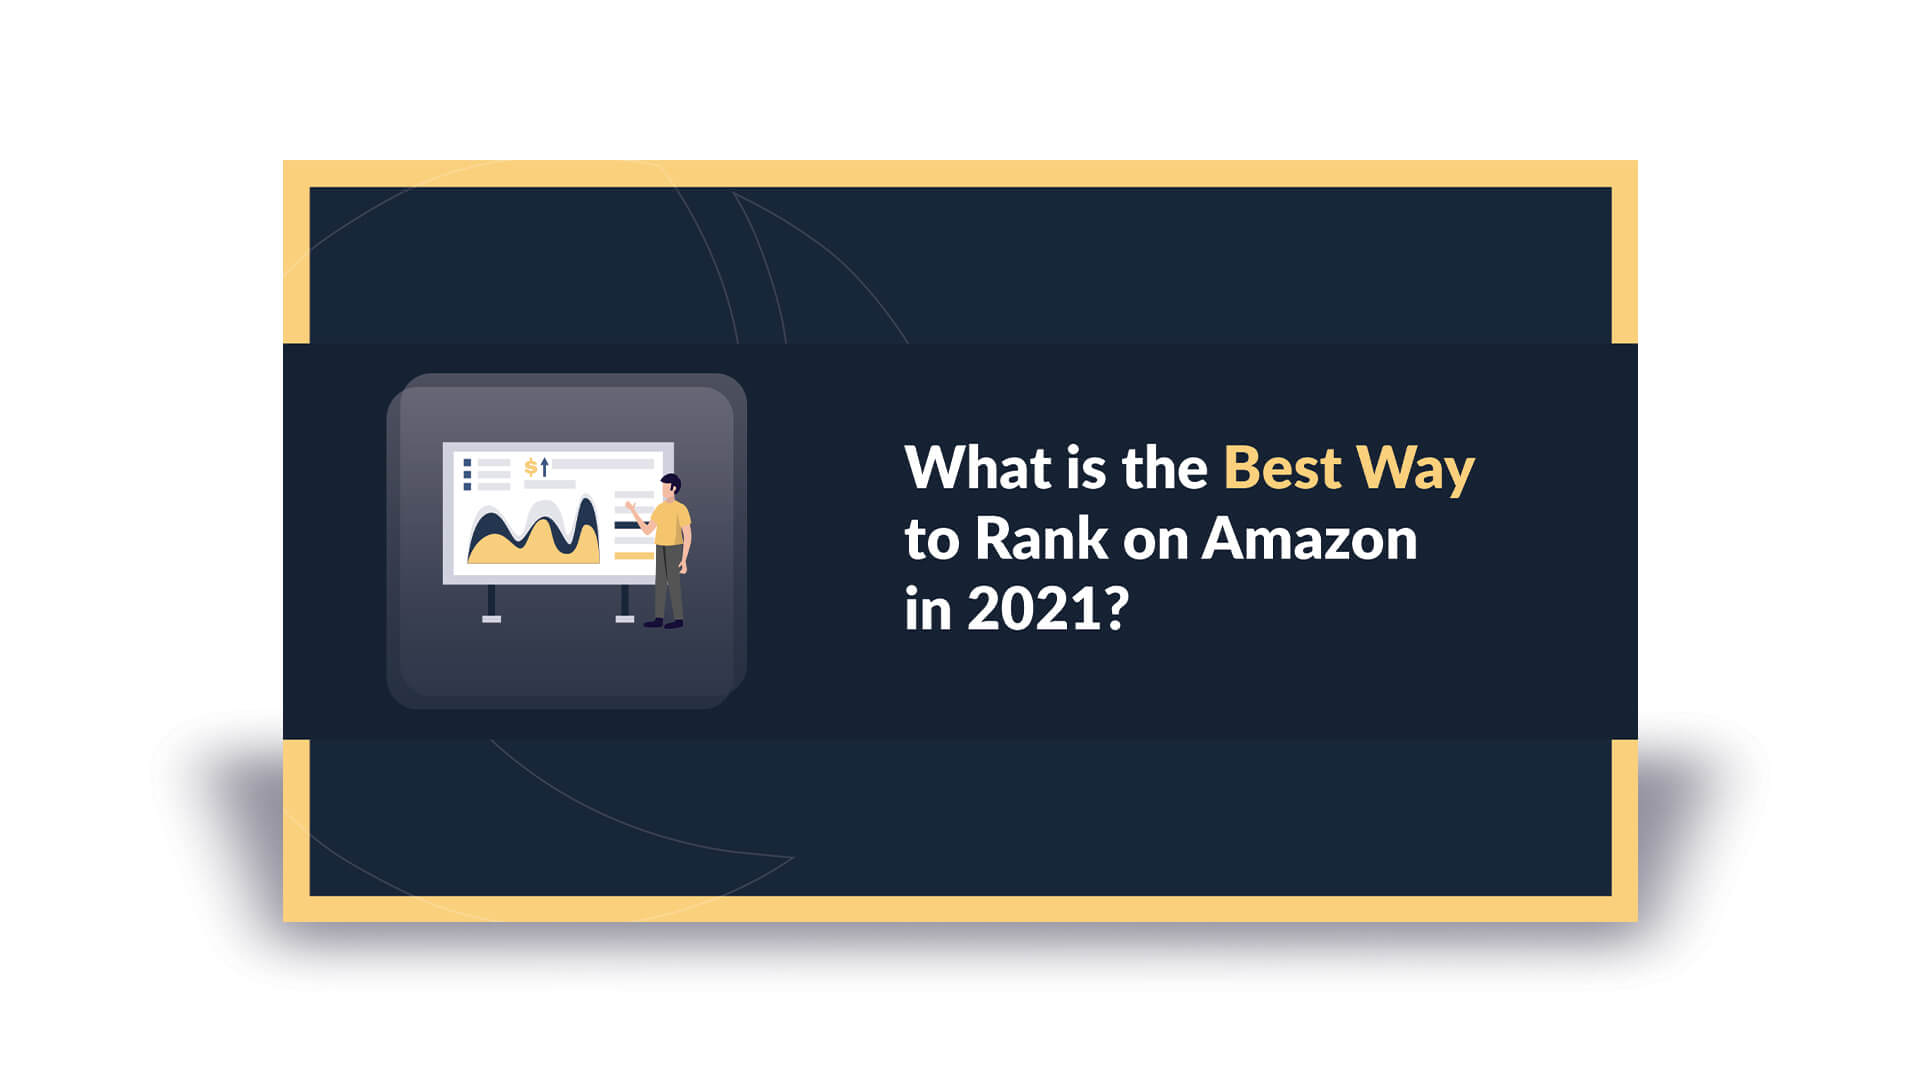 What is the Best Way to Rank on Amazon in 2021?